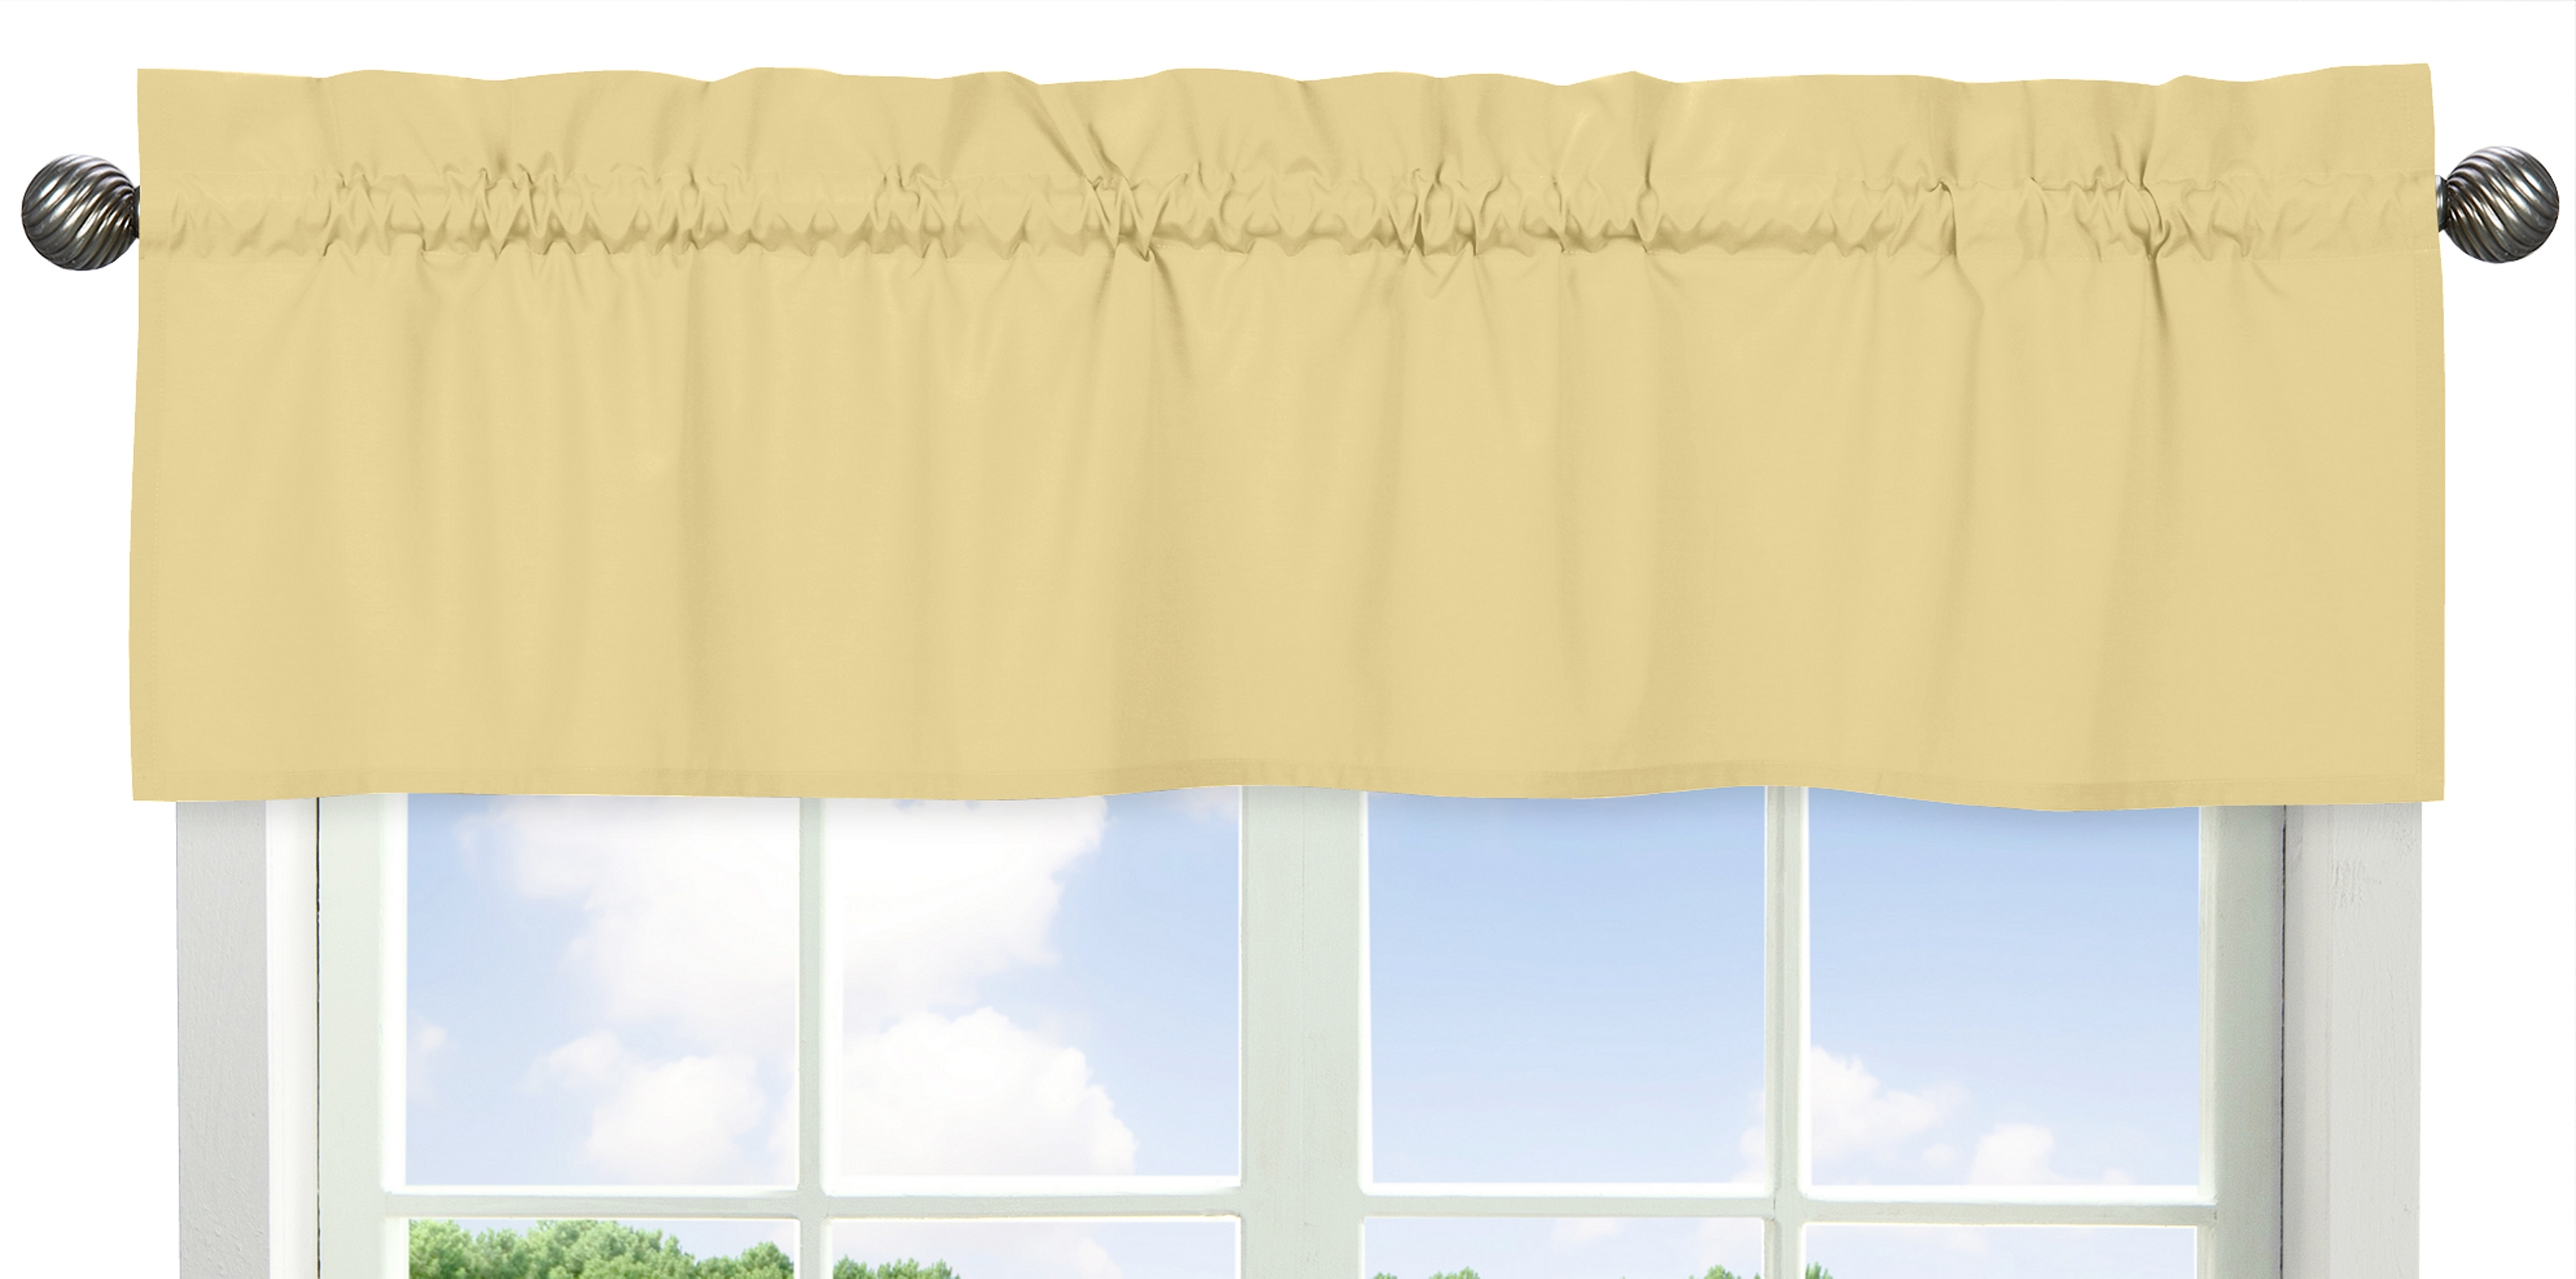 Details about Yellow Window Valance Curtain For Sweet Jojo Designs Bedding  Bedroom Decor